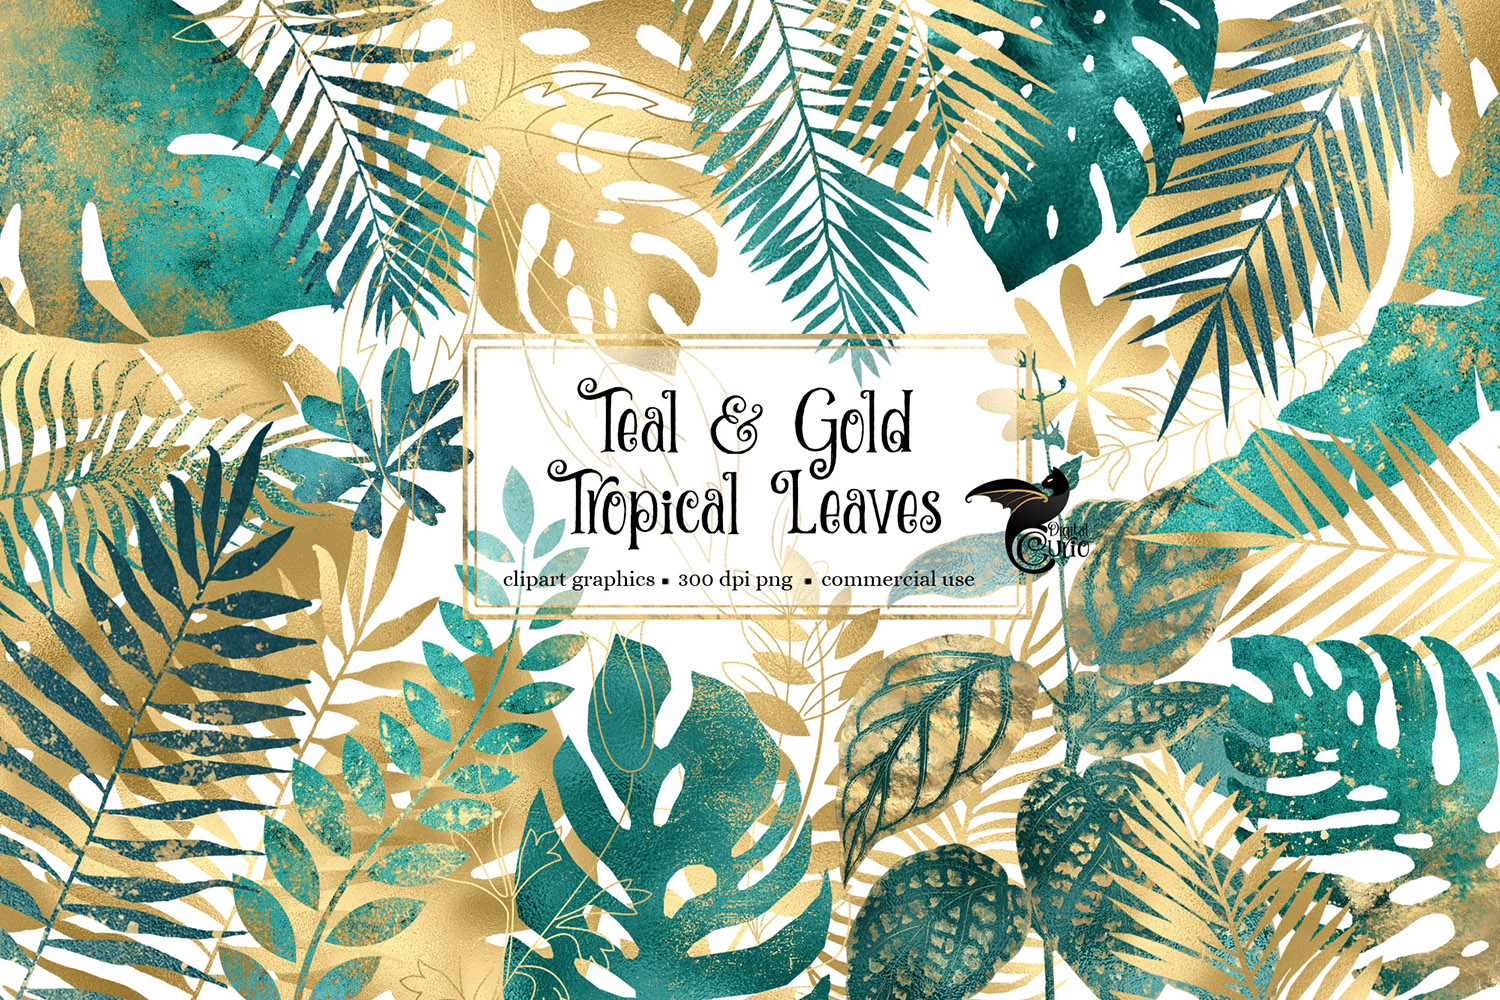 Download Free Teal And Gold Tropical Leaves Graphic By Digital Curio for Cricut Explore, Silhouette and other cutting machines.